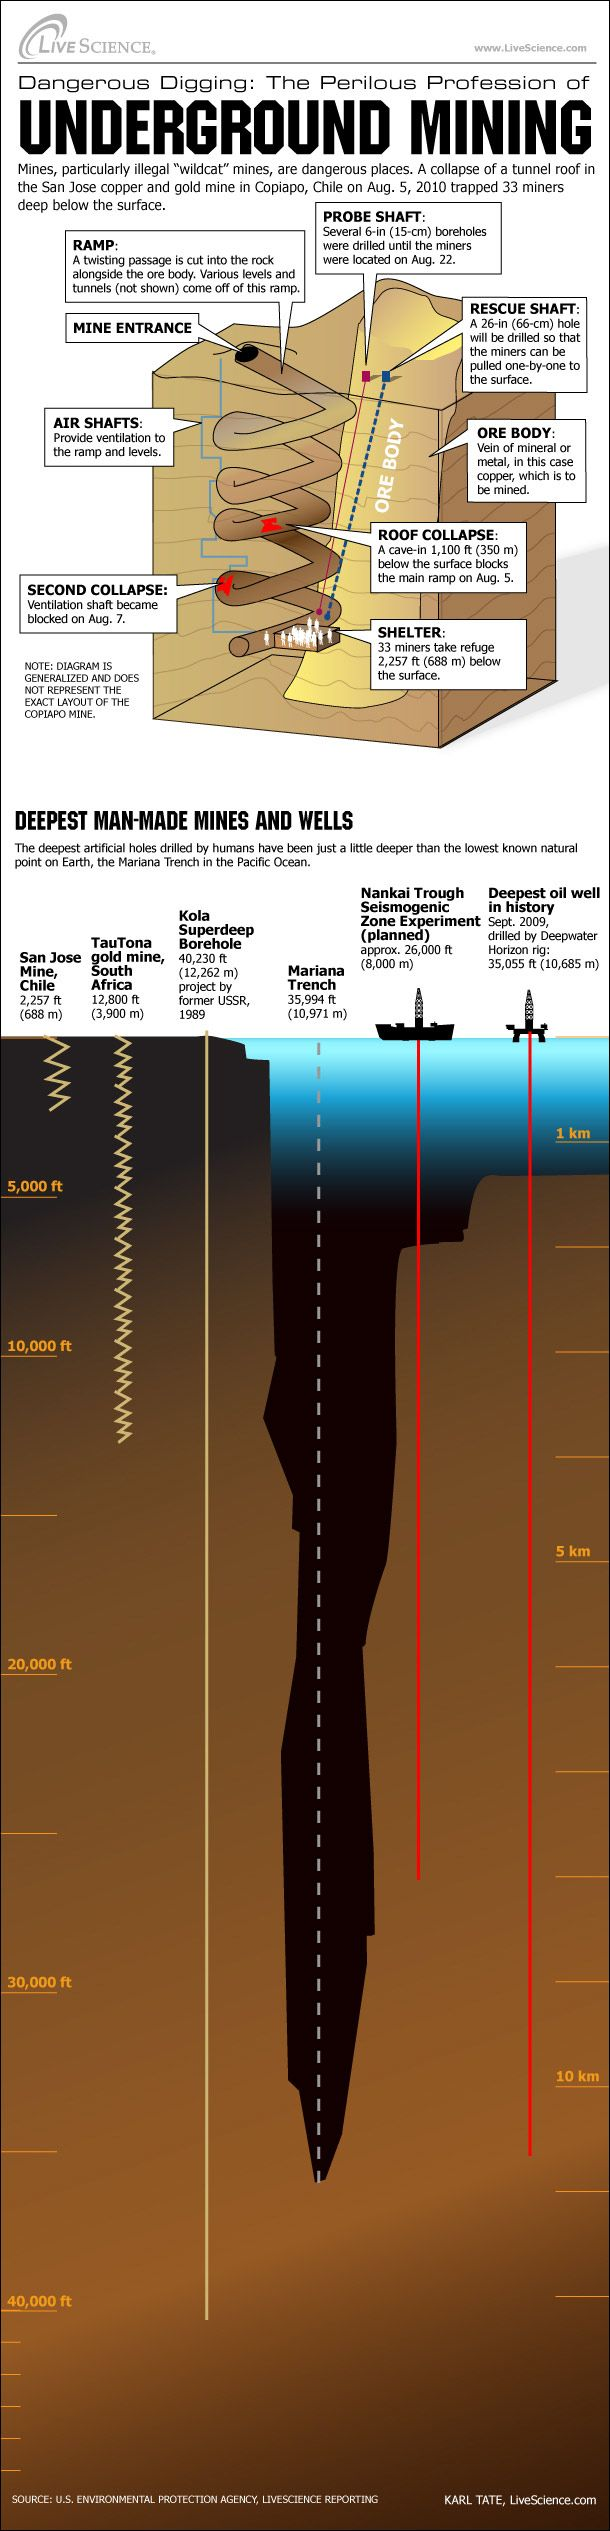 Mining, for Ore and for Oil - Underground Mining - Infographic - Chilean mine collapse